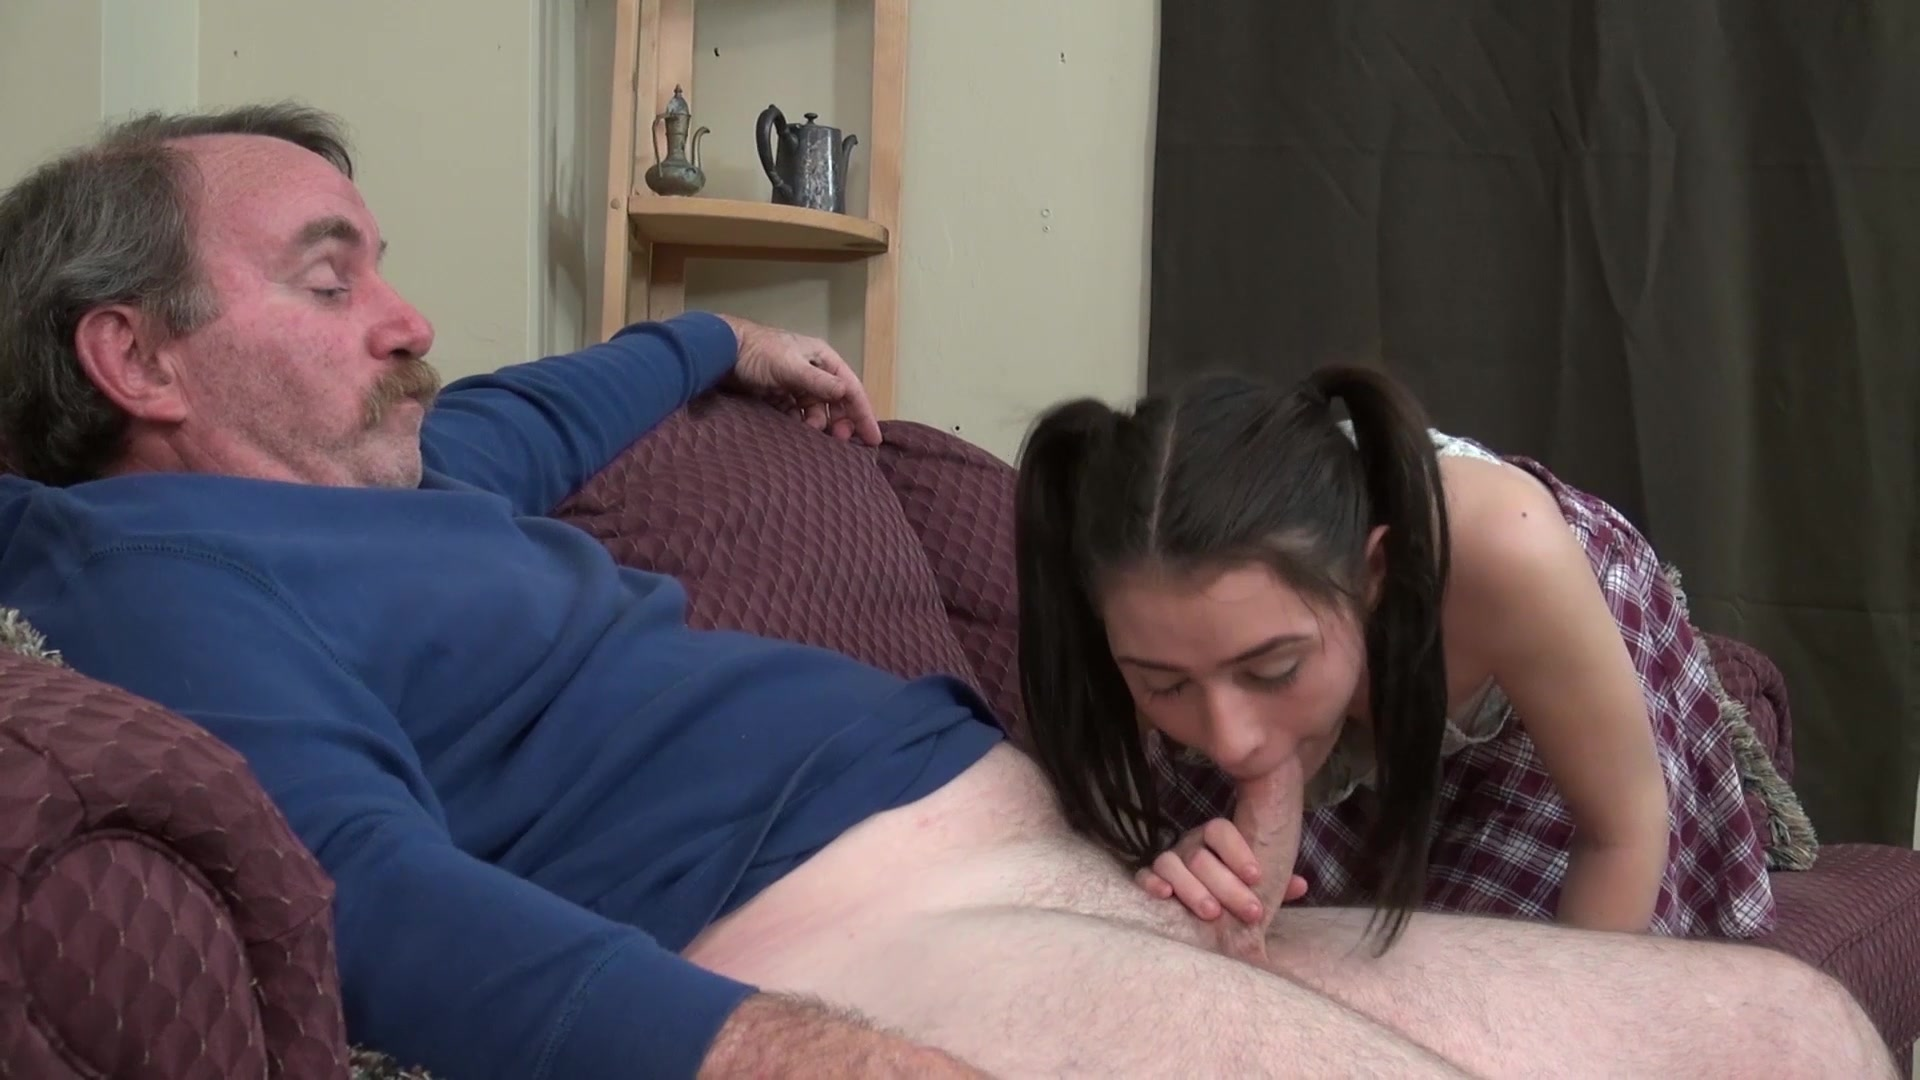 Teen step daughter fucked by step dad while she plays photo games